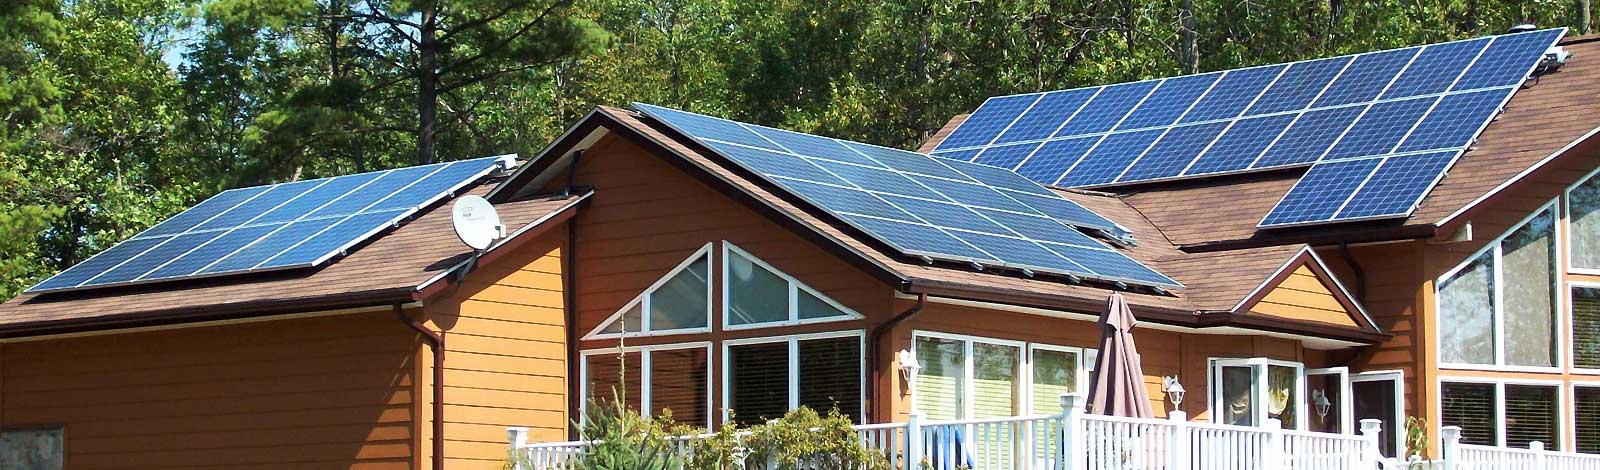 solar panels istalled at a home